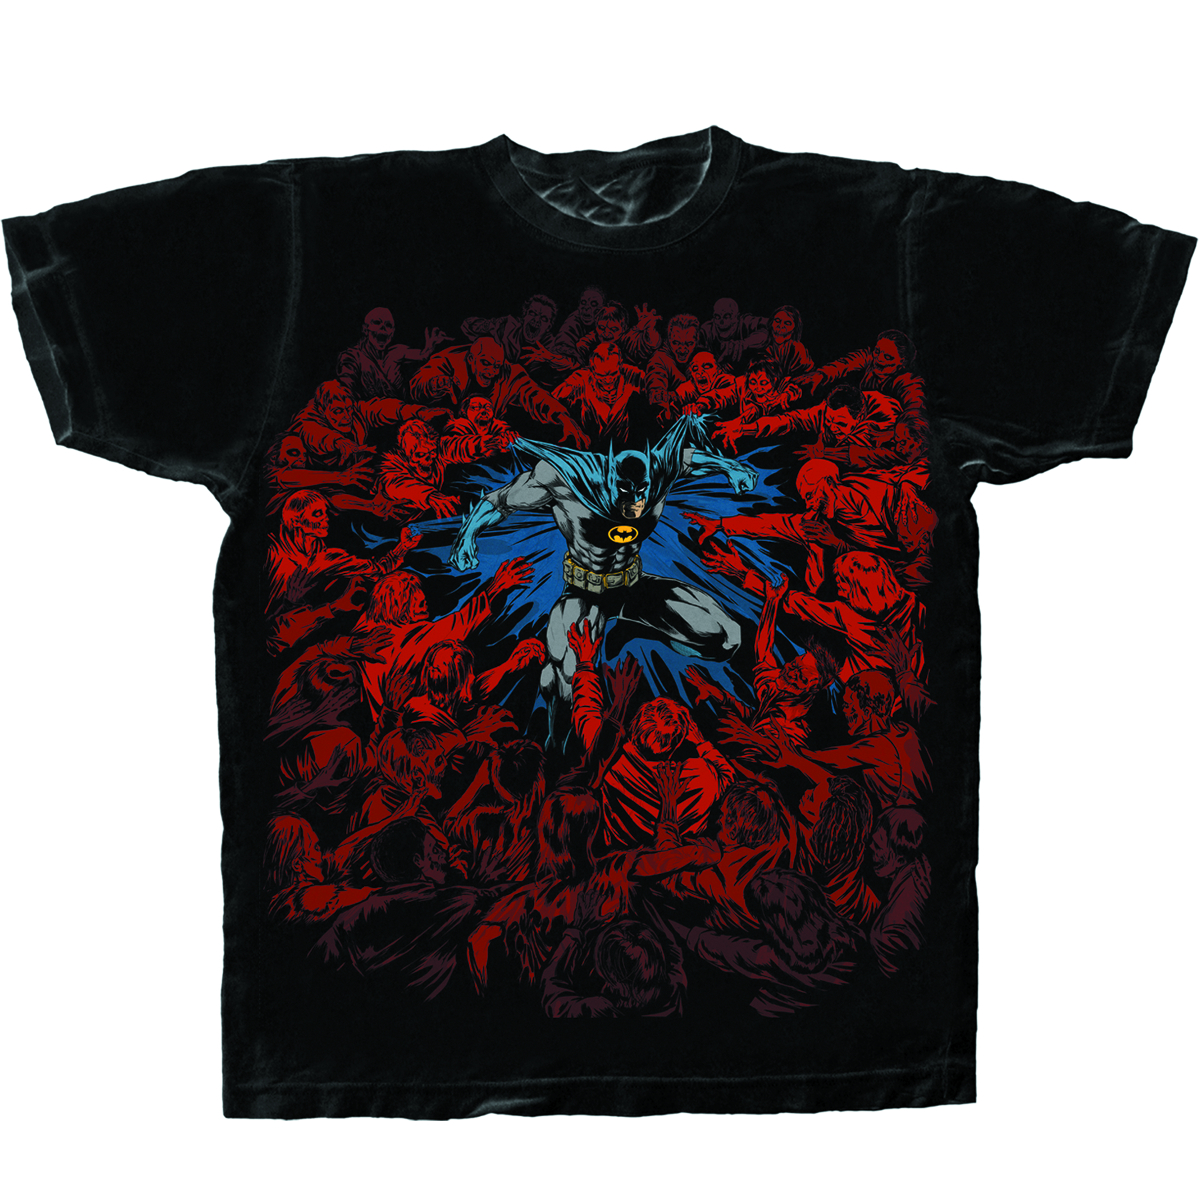 BATMAN DEFENSE BLK T/S LG